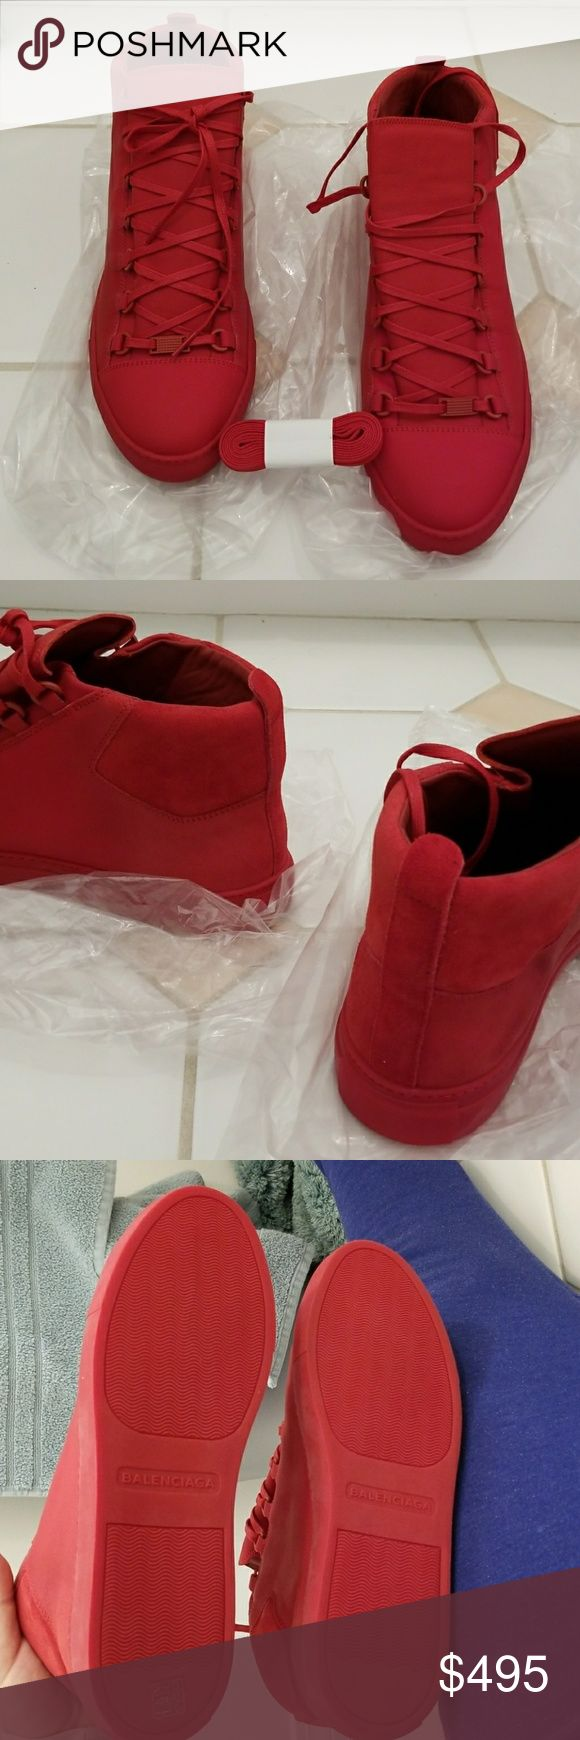 UNWORN Red Balenciaga Arena. AUTHENTIC. NO TRADE High top leather sneakers by Balenciaga, mint condition, not worn even once.  Size 10.5 European size 44. This is a dead stock, NO receipt, it is as authentic as it gets. NO trades, must pay for shipping. Balenciaga Shoes Sneakers